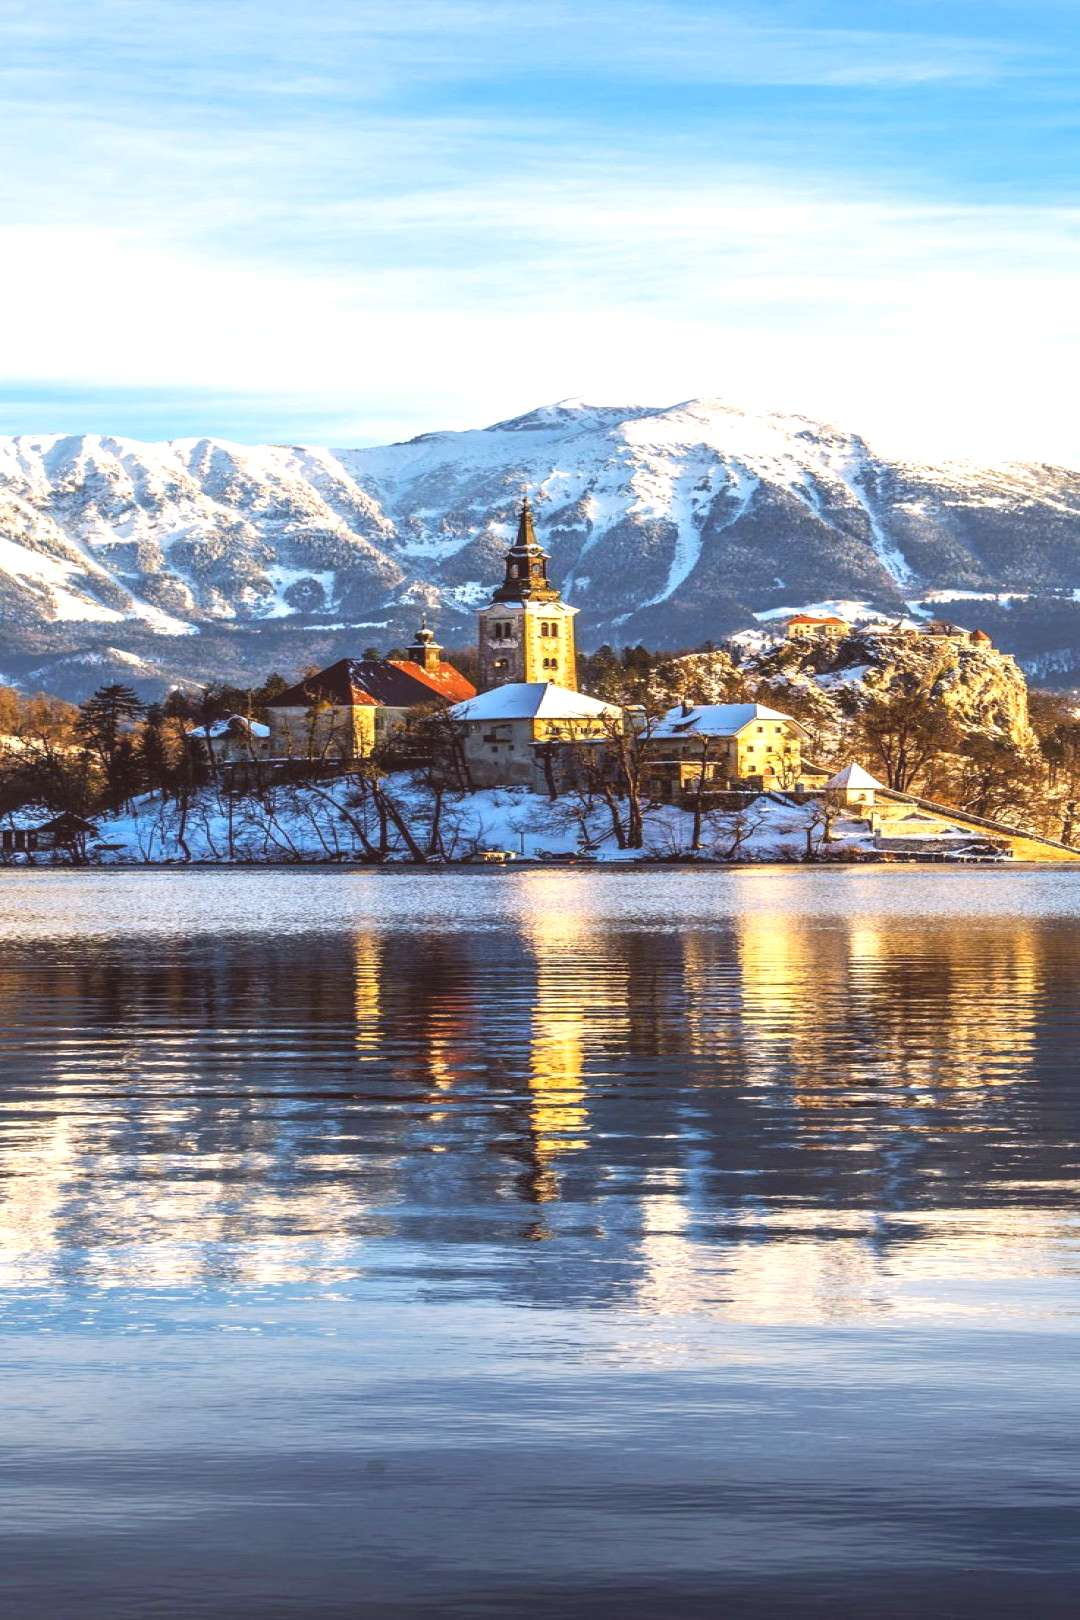 The 20 Most Stunning Fairytale Castles in Winter -